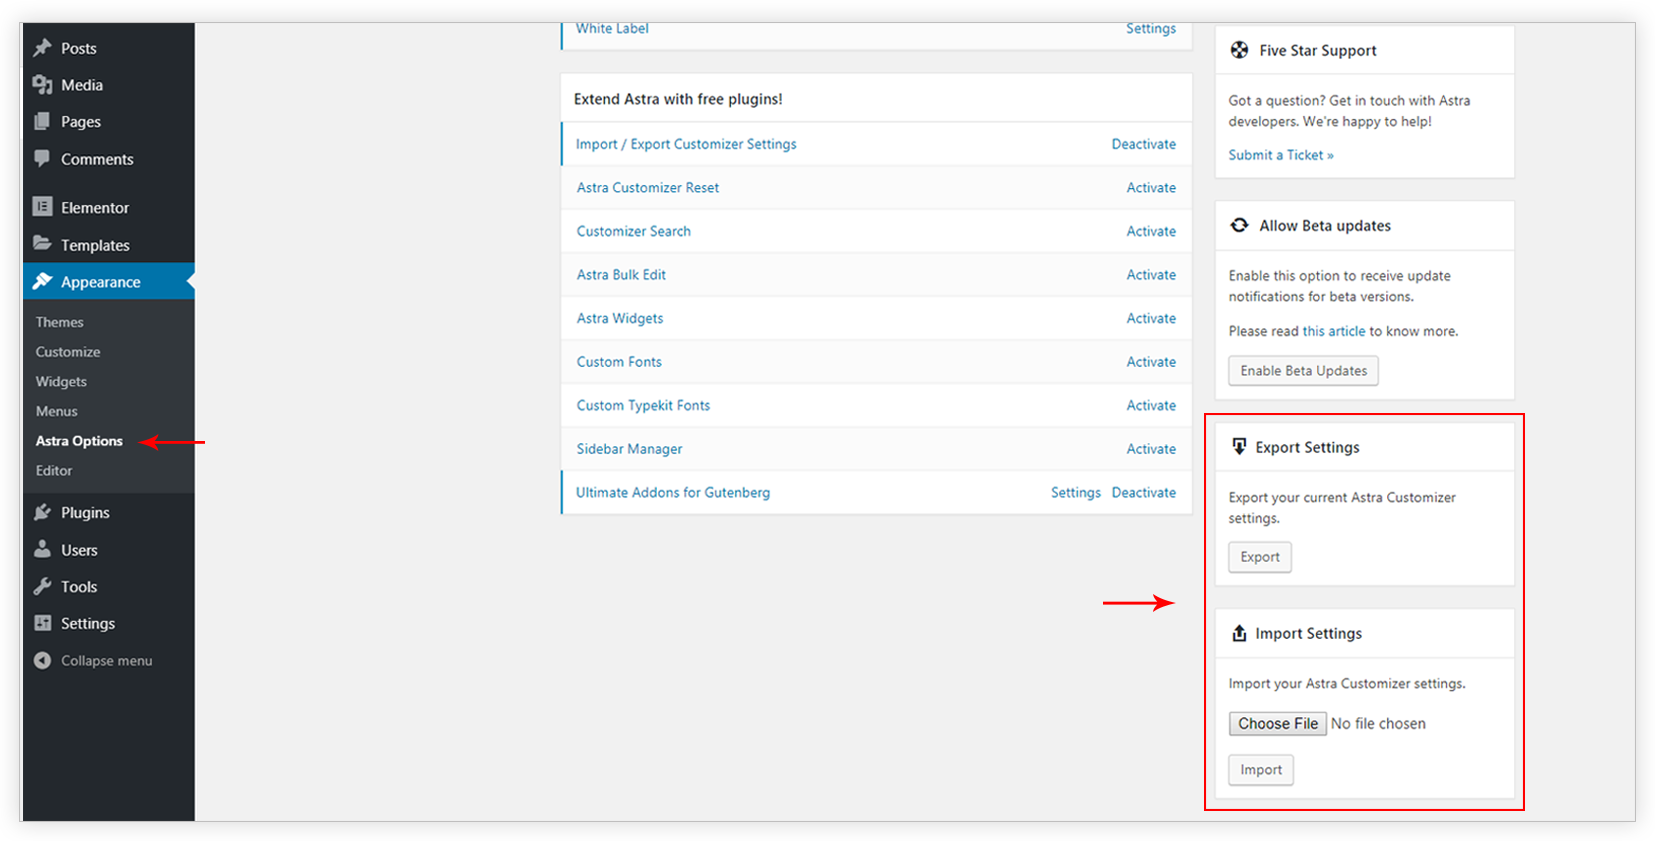 Import / Export Astra Customizer Settings | Astra